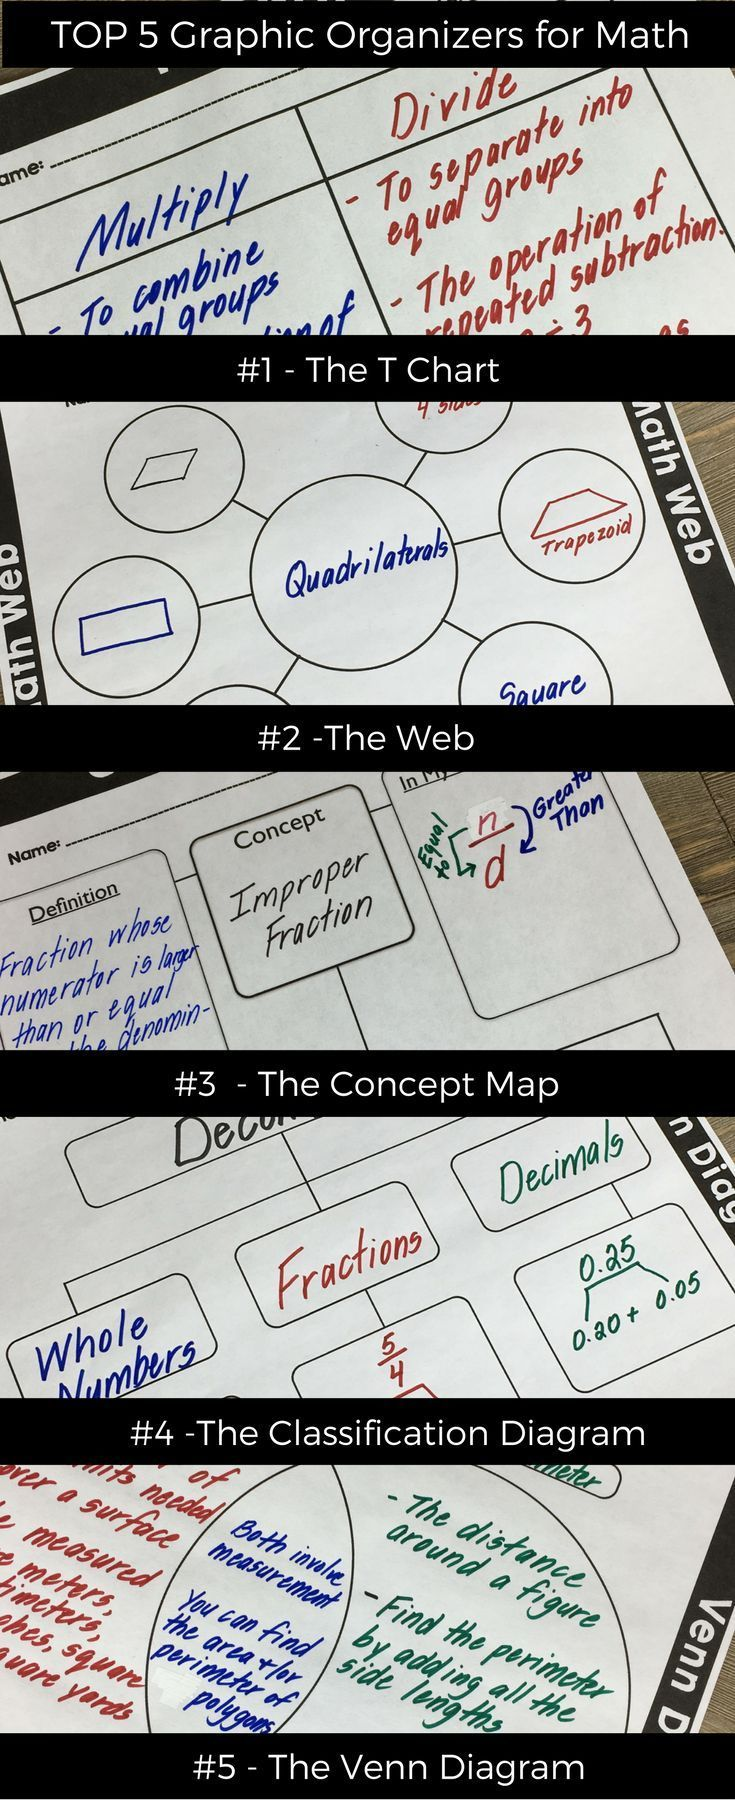 Learn how to use graphic organizers to help your students make connections and organize their thinking in math class.